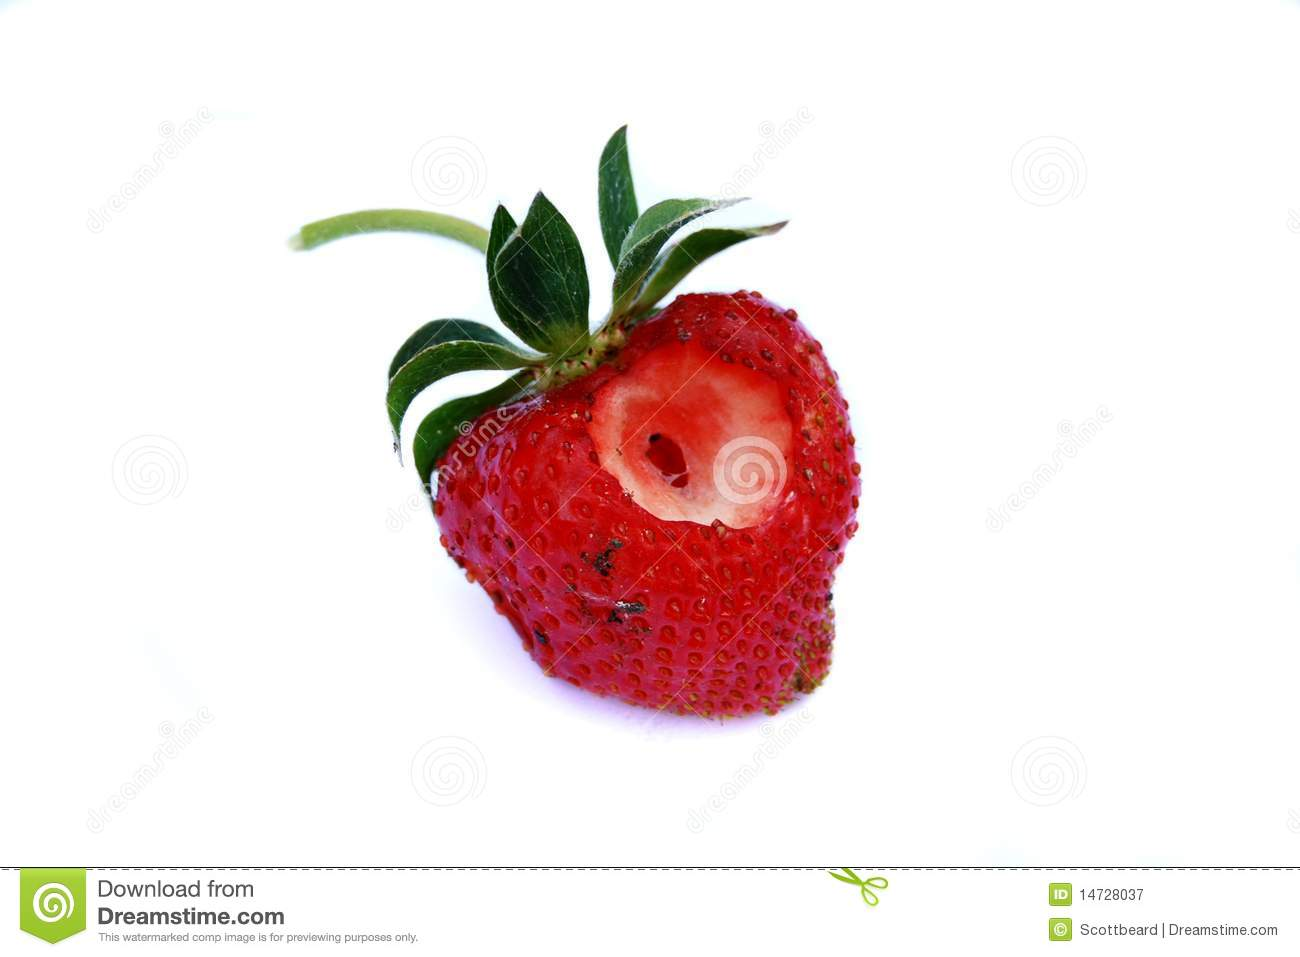 Rotten Strawberries Rotten strawberry with missing